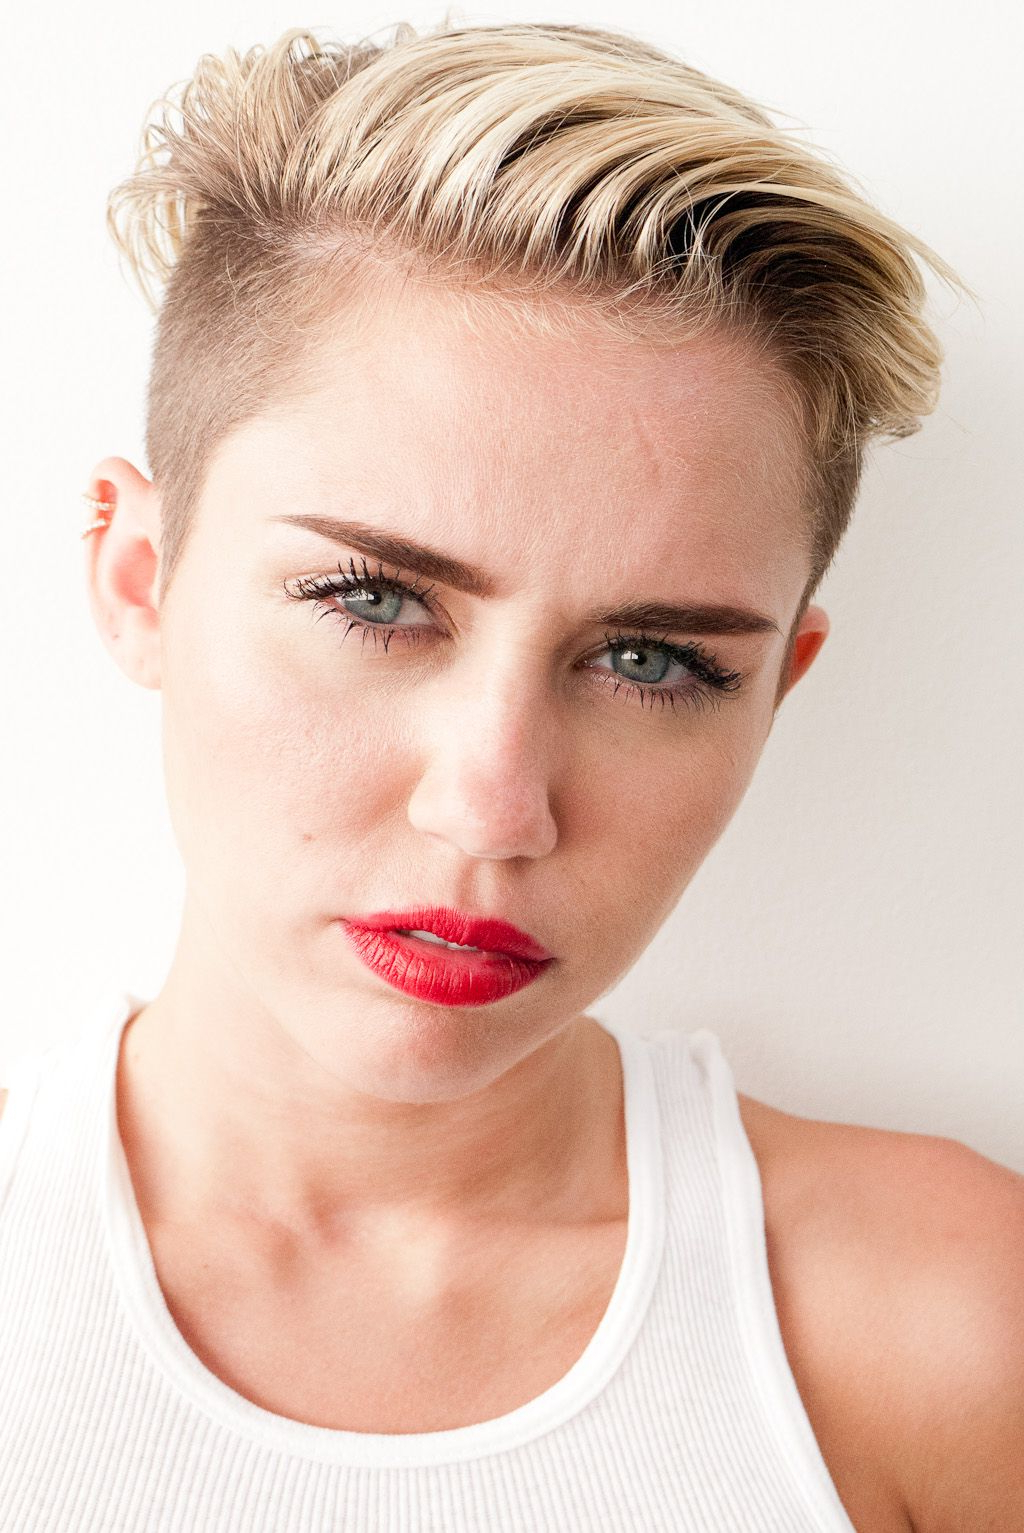 Miley Cyrus In Paris & Terry Richardson Photoshoot | Photoshoot Within Miley Cyrus Short Hairstyles (View 18 of 25)